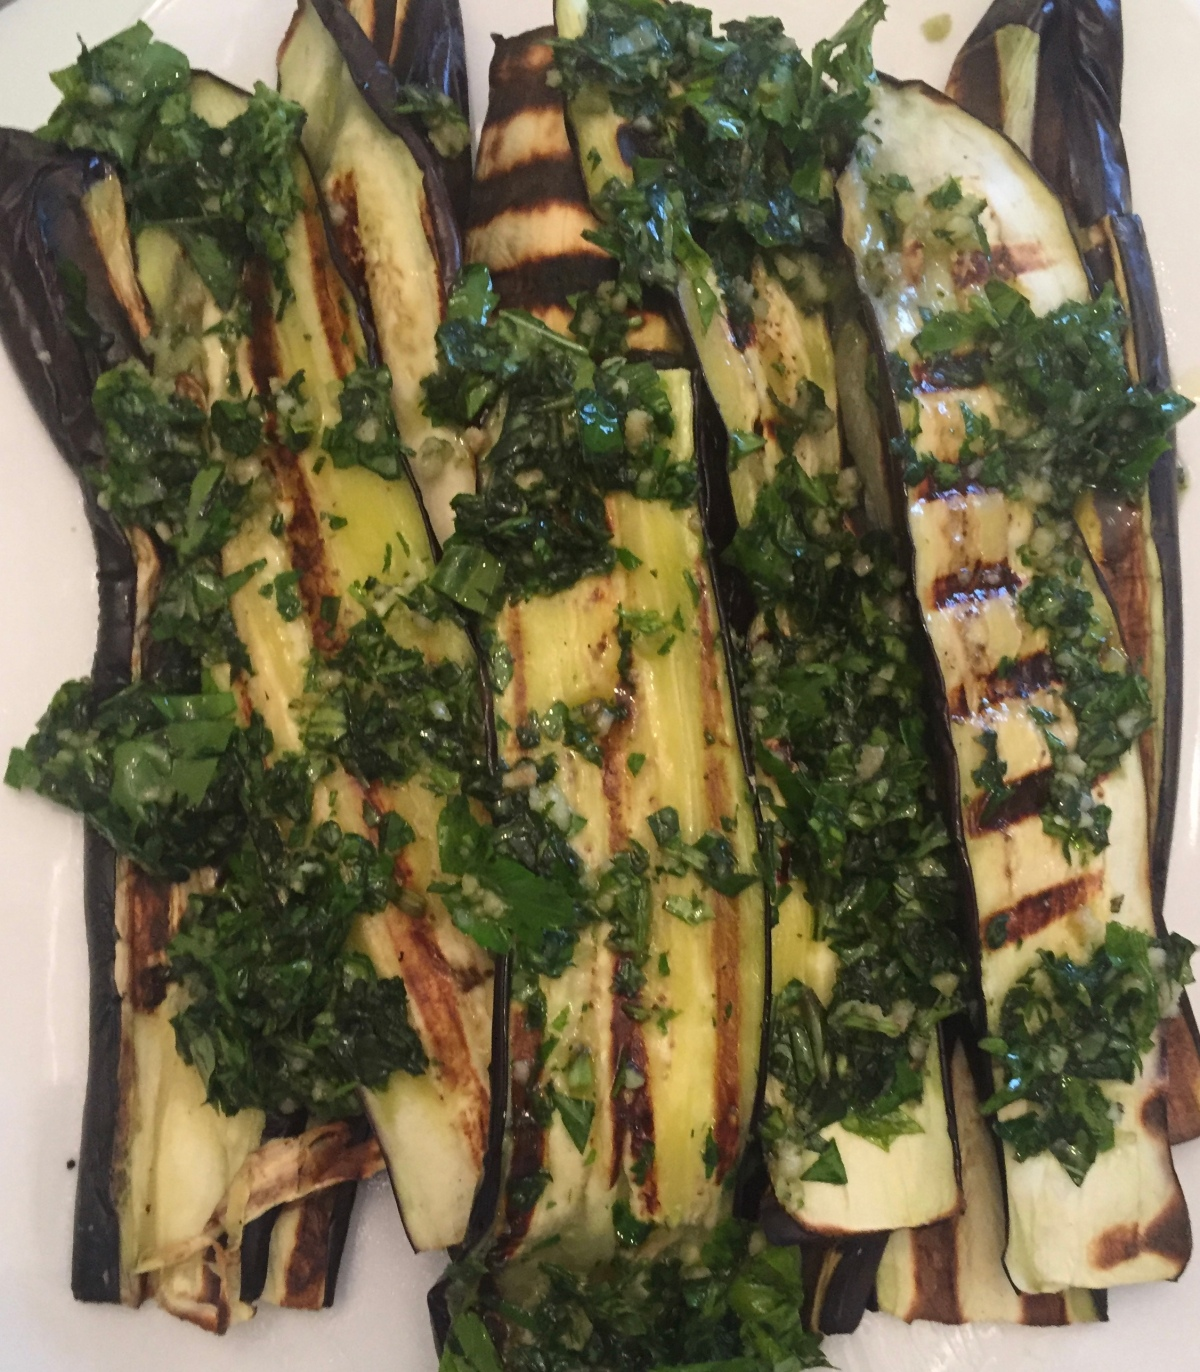 Grilled Eggplant with Basil, Parsley and Garlic Oil